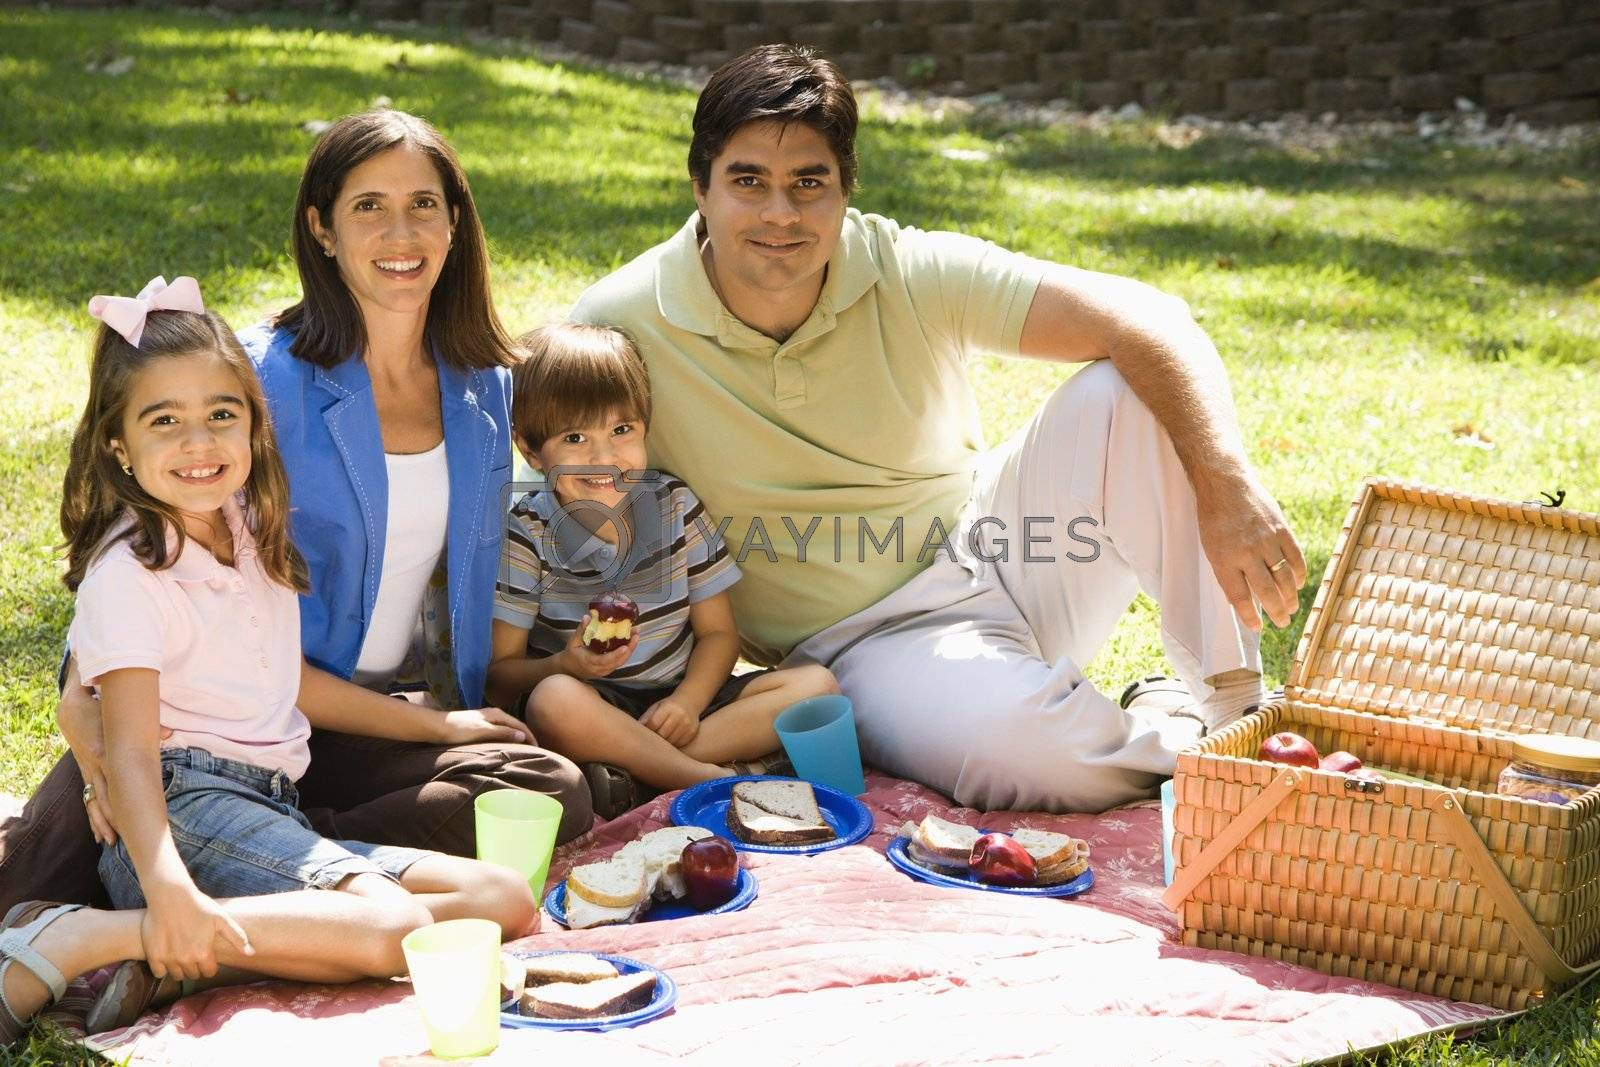 Hispanic family picnicking in the park and smiling at viewer.